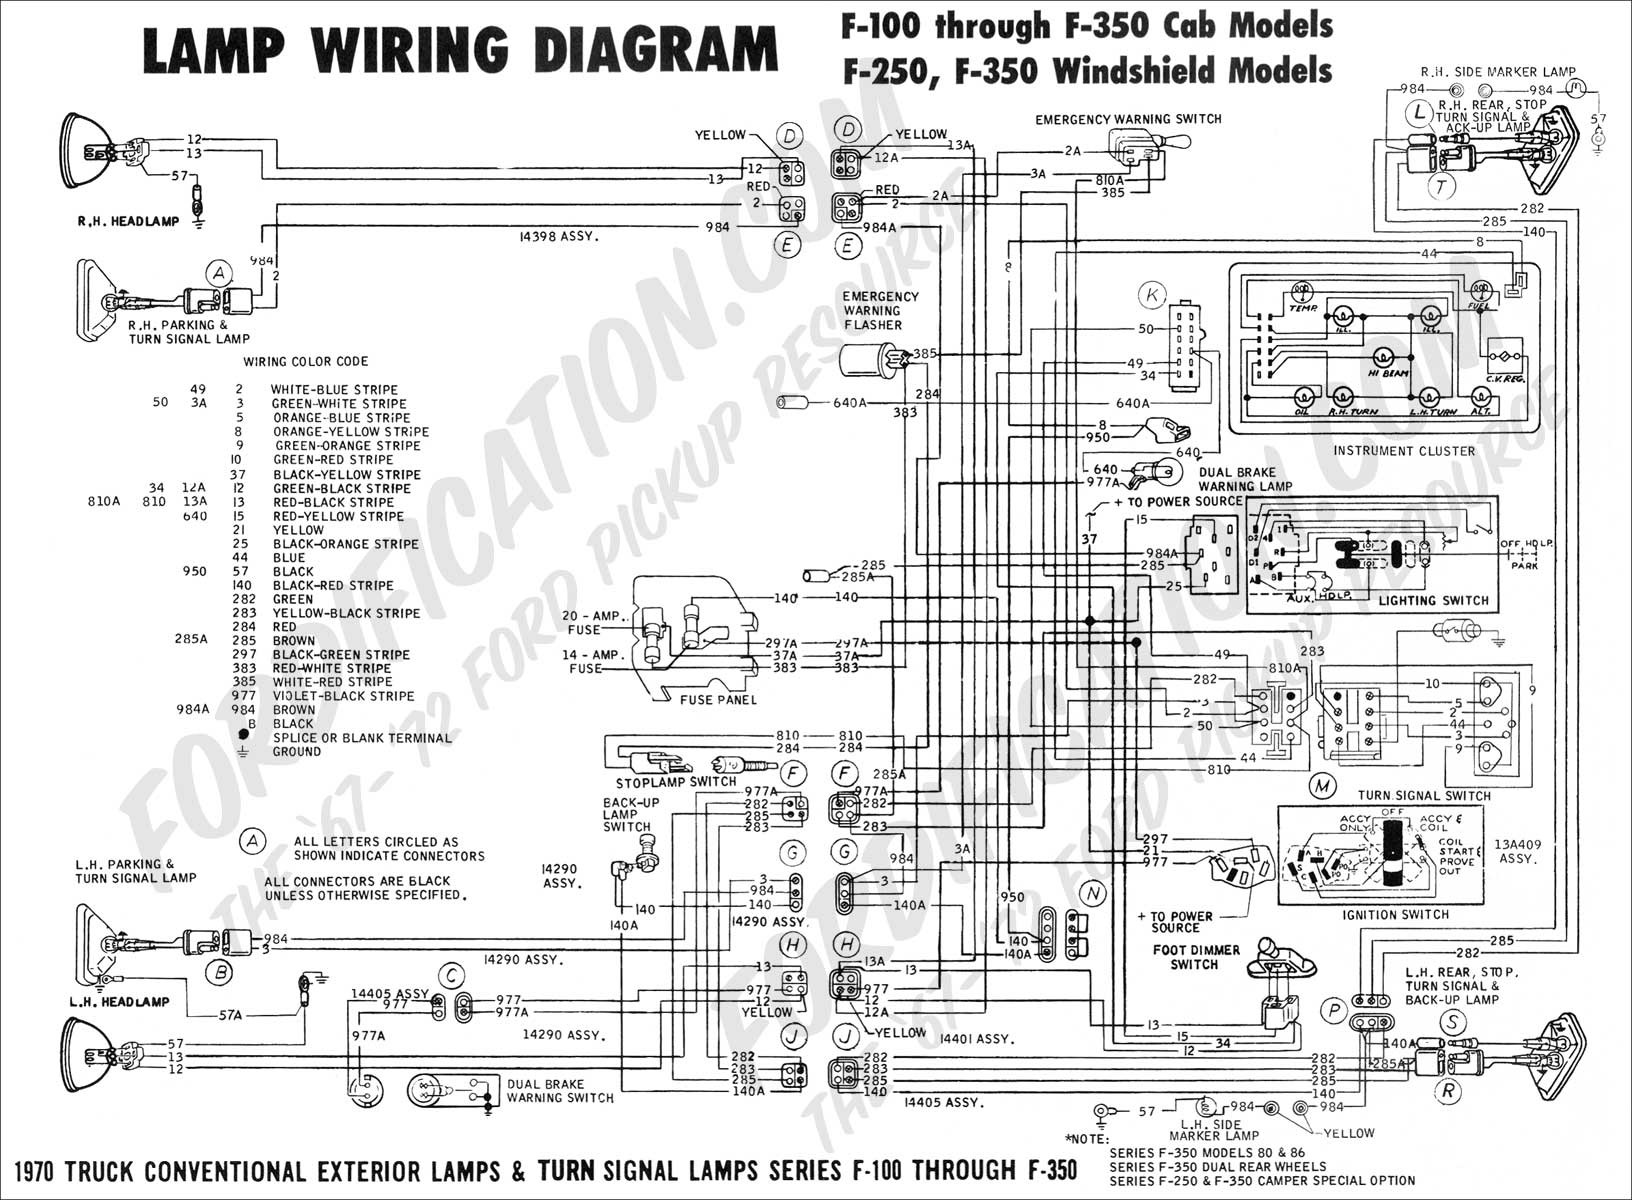 250 wiring diagram besides 1993 ford f 250 wiring diagram besides rh masinisa co Ford Electrical Wiring Diagrams 1993 Ford F-250 7.5L Wiring-Diagram